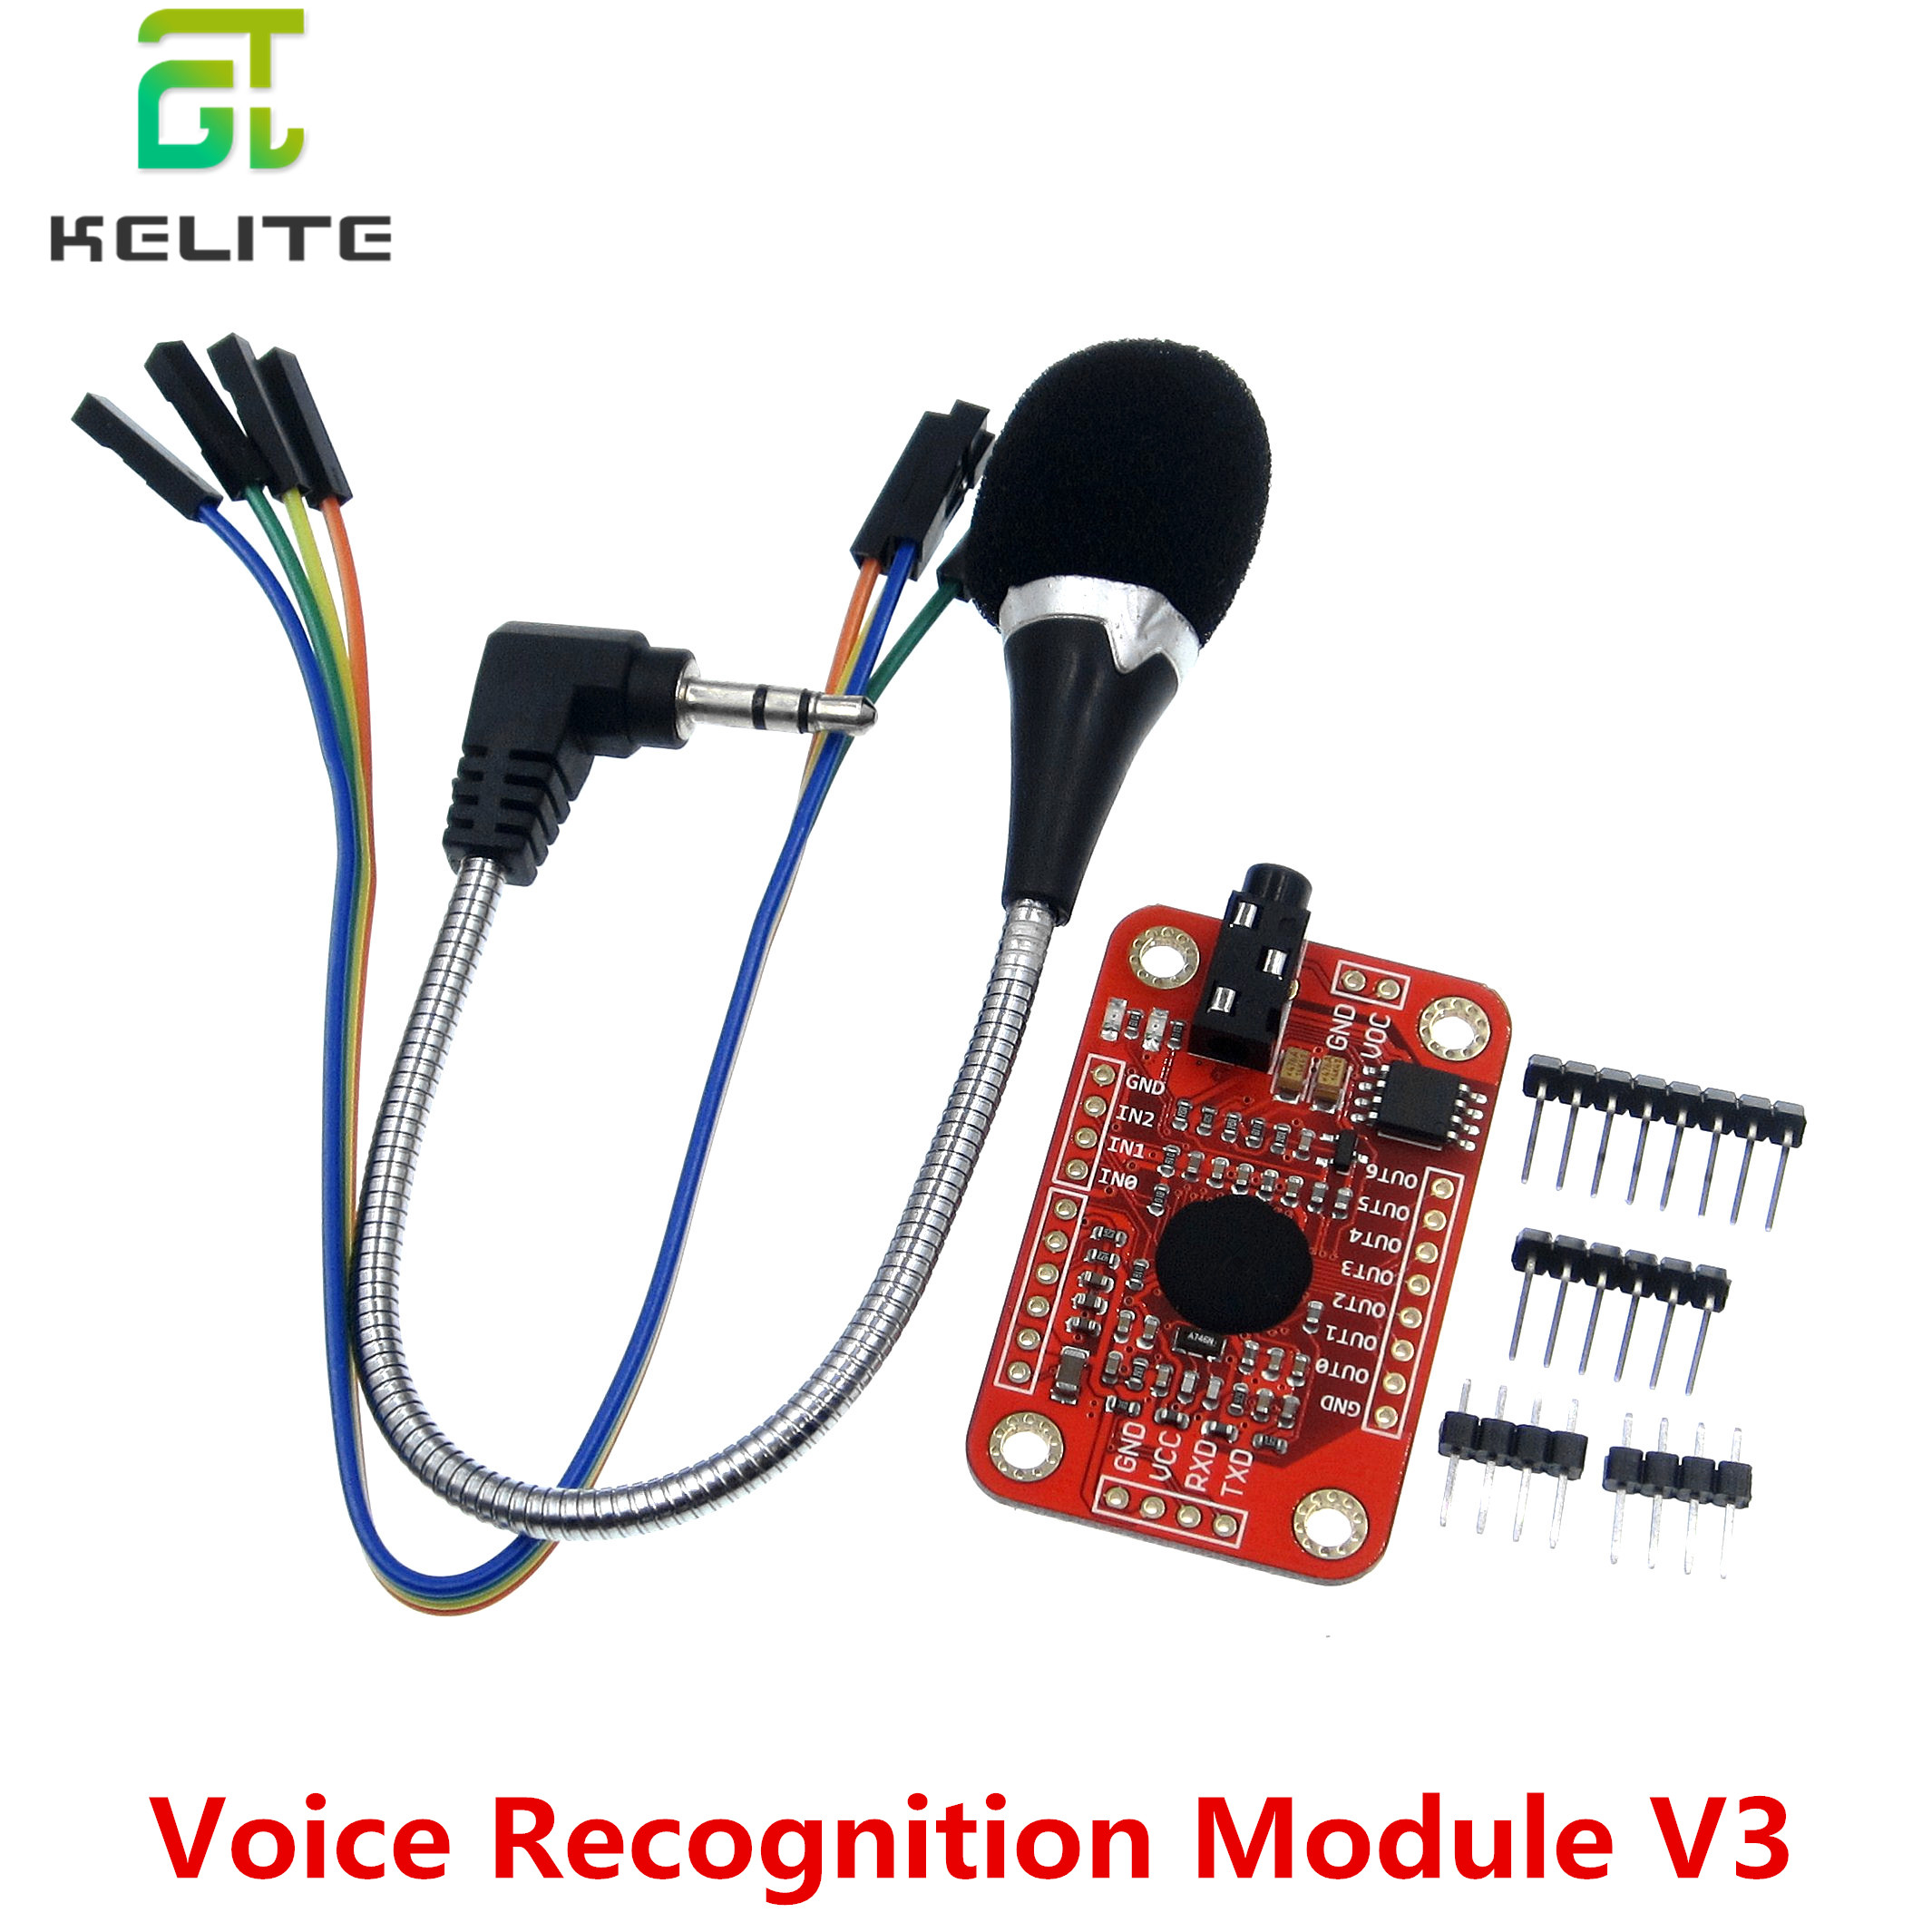 1set Speed Recognition, Voice Recognition Module V31set Speed Recognition, Voice Recognition Module V3